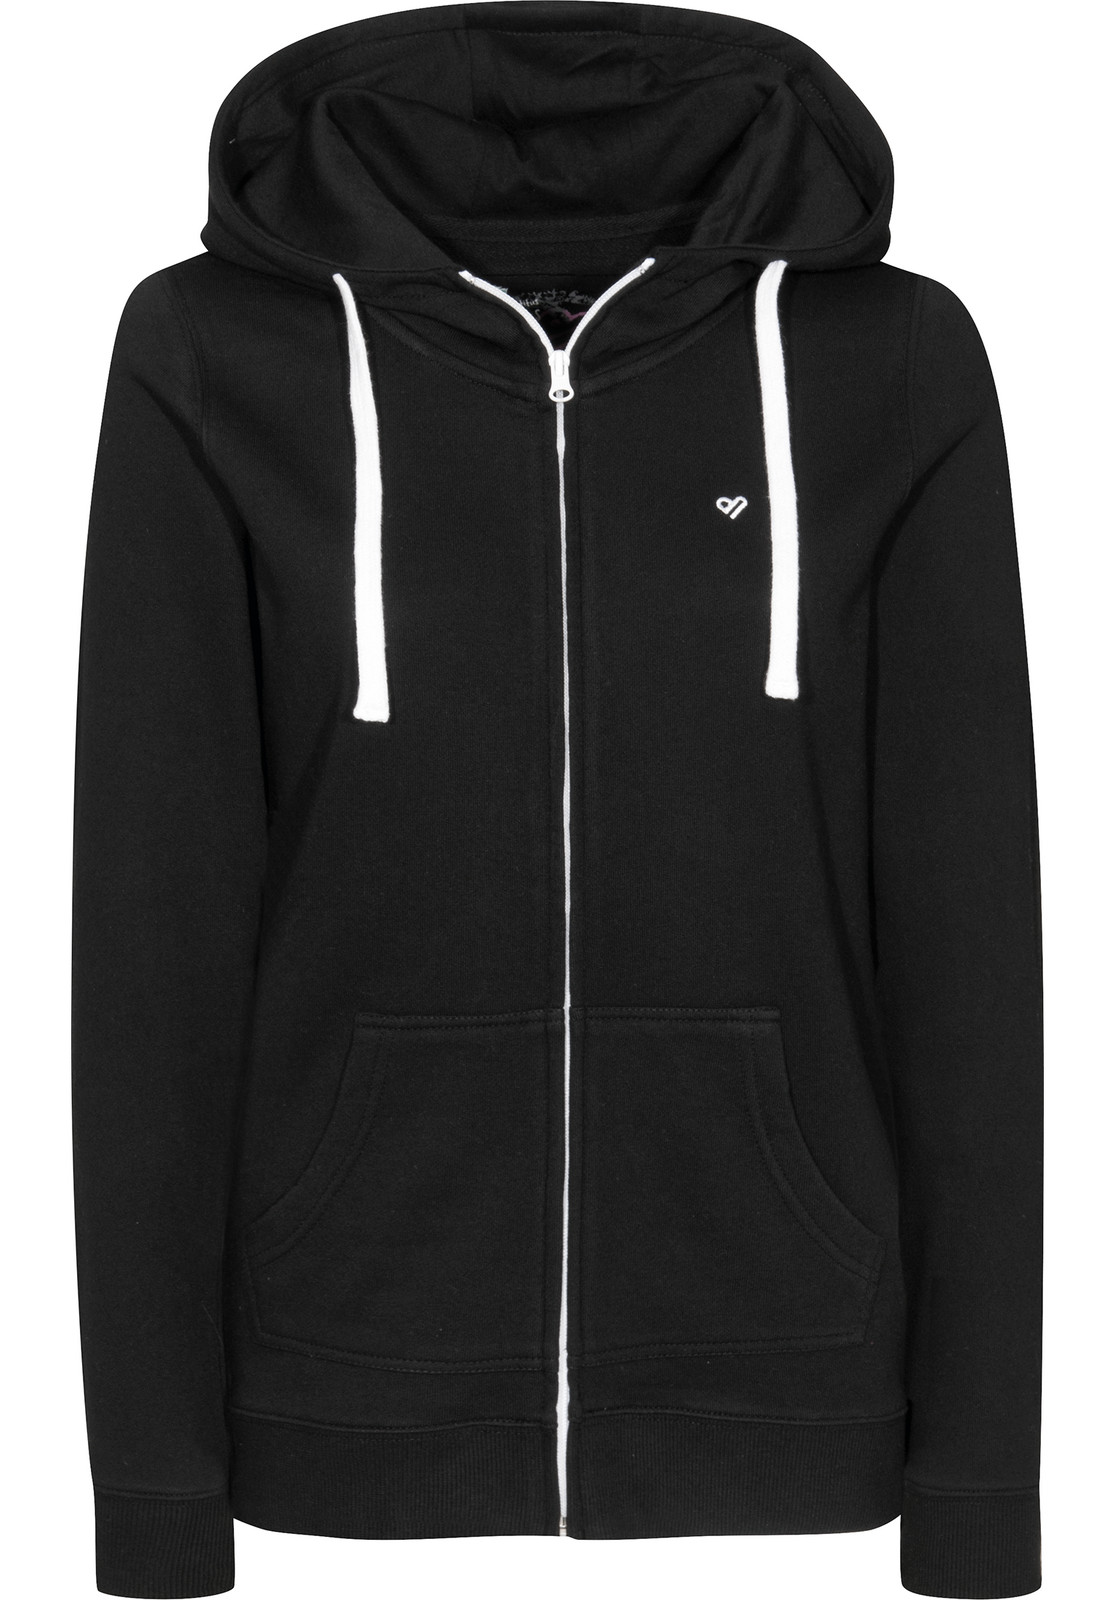 TITUS Axiom Zip Light Zip-Hoodie  kaufen bei titus.de